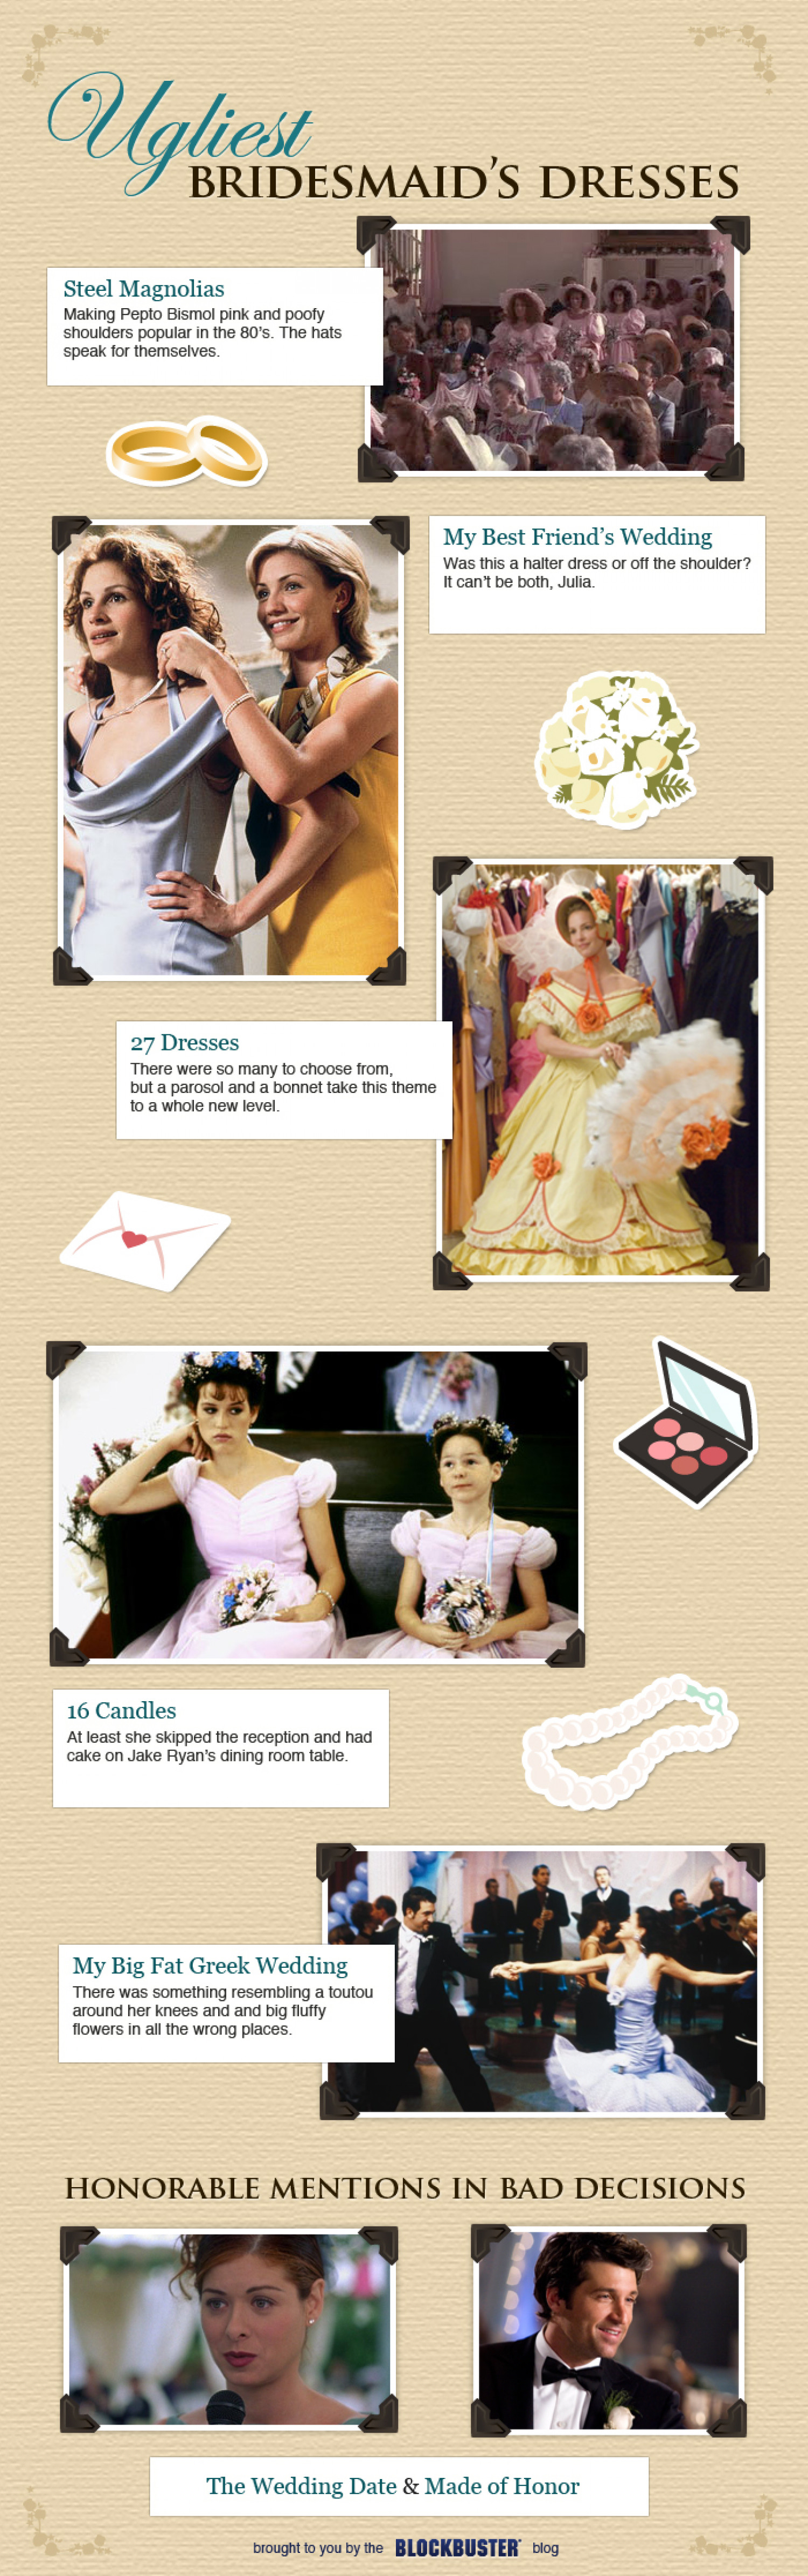 Ugliest Bridesmaid Dresses   Infographic